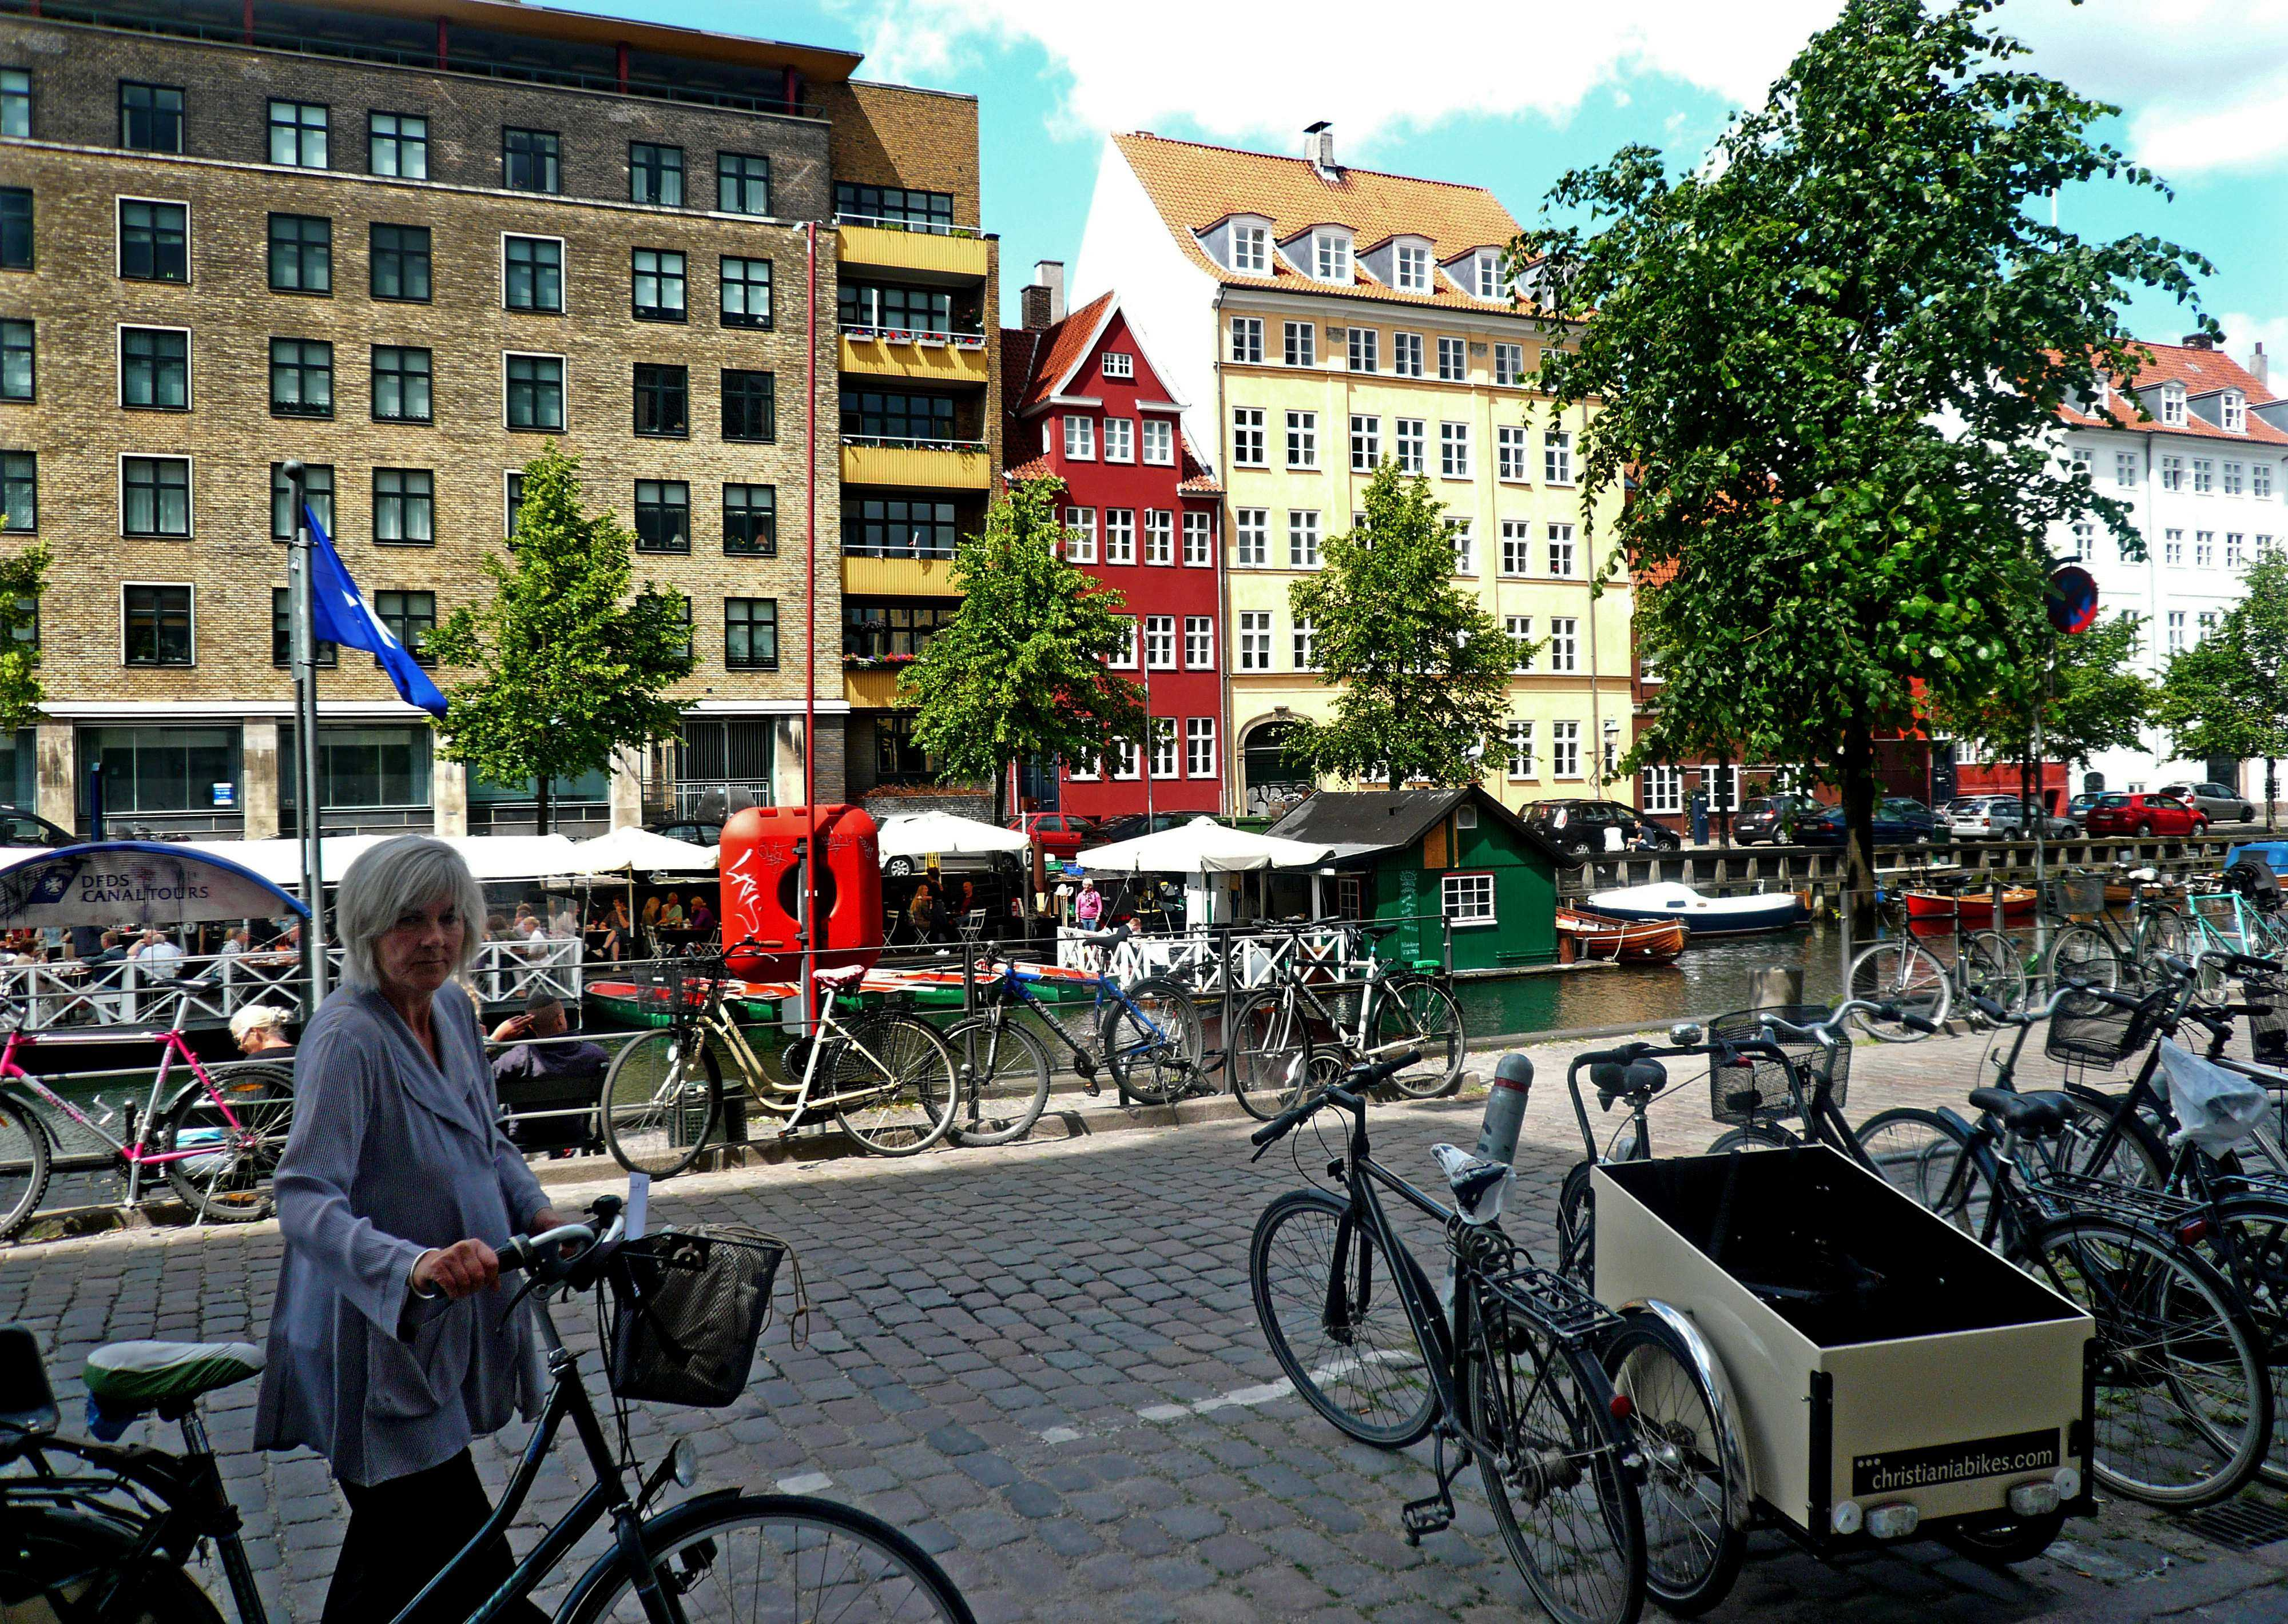 Bikes+line+the+canals+in+the+Christianshavn+neighborhood+in+Copenhagen%2C+Denmark.+%28Betty+Hallock%2FLos+Angeles+Times%2FMCT%29.+Photo+Courtesy+of+MCT.